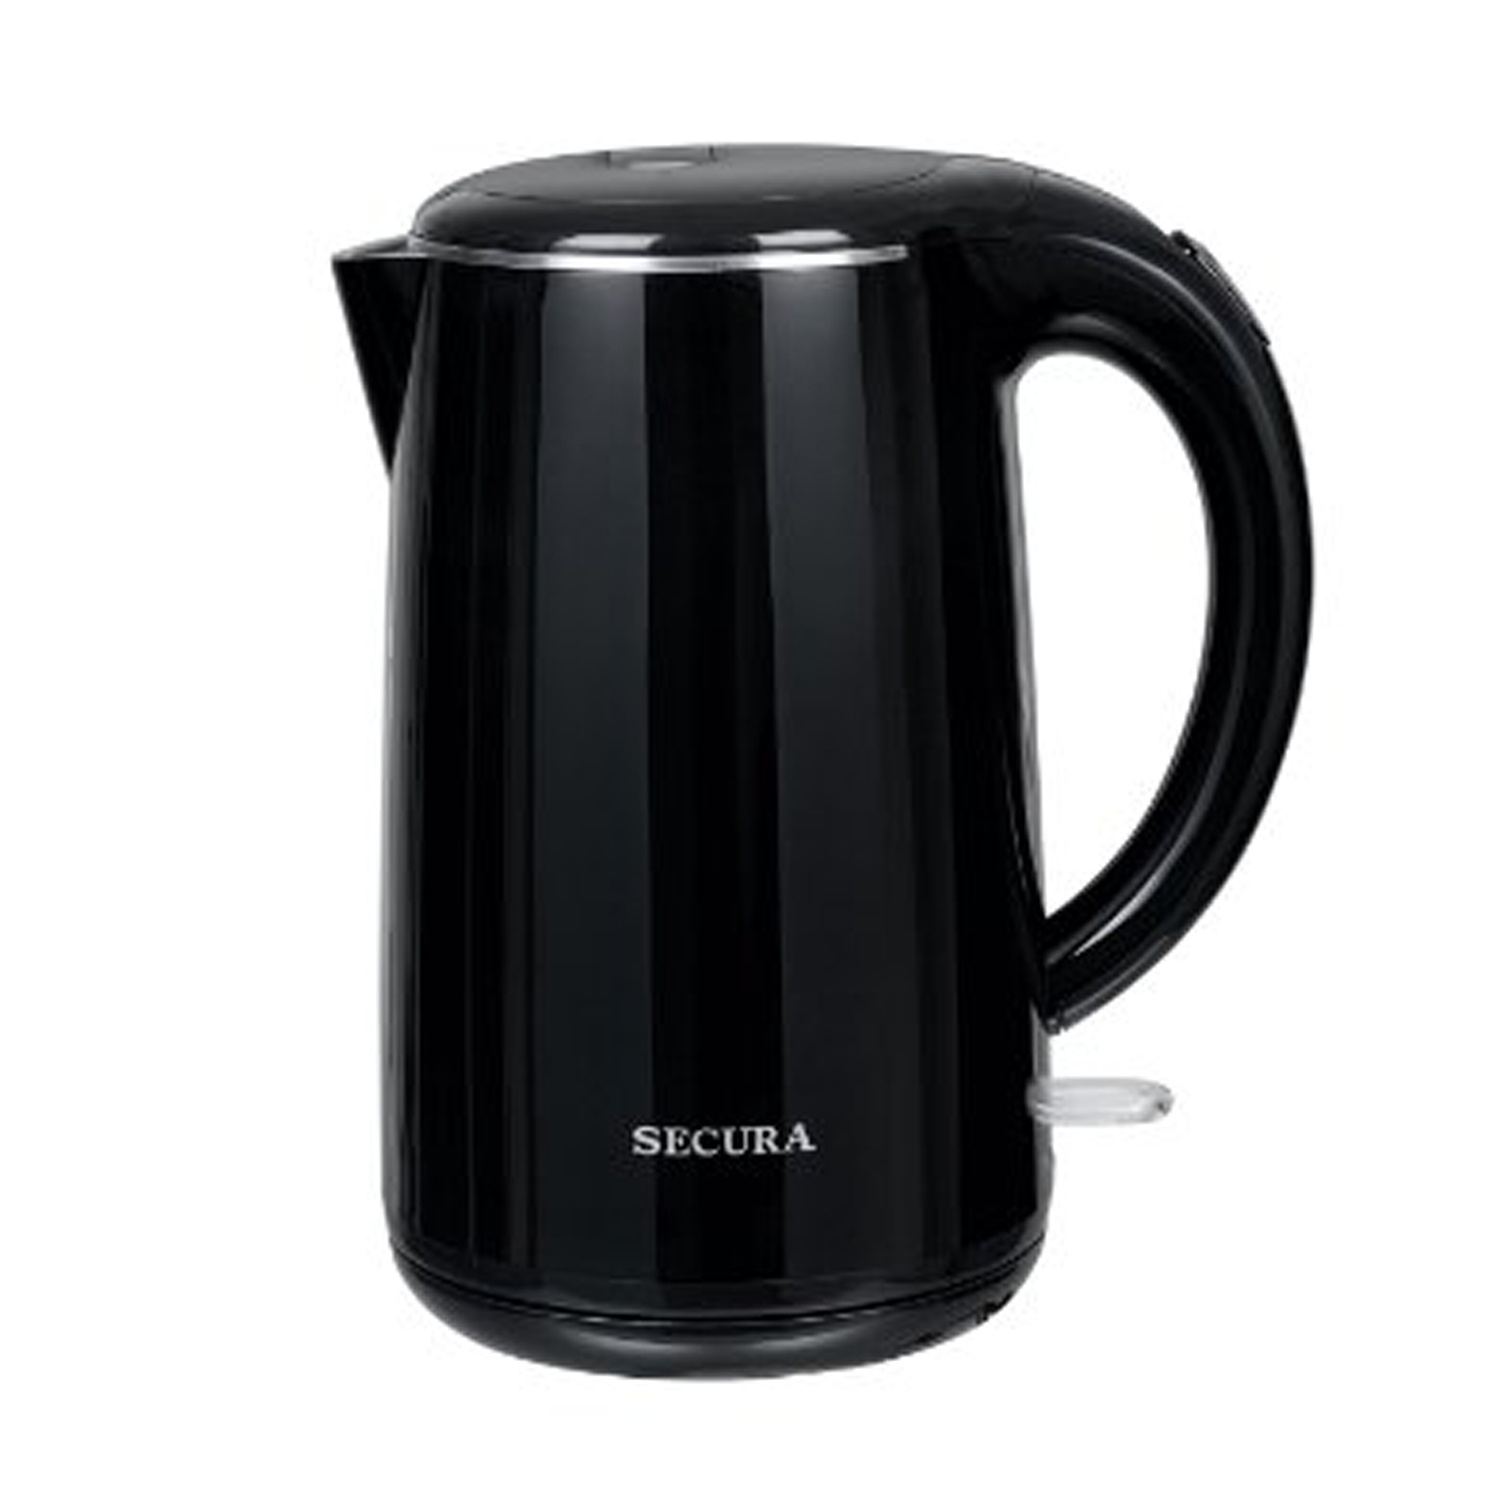 Secura 1.8 Quart Stainless Steel Electric Water Kettle